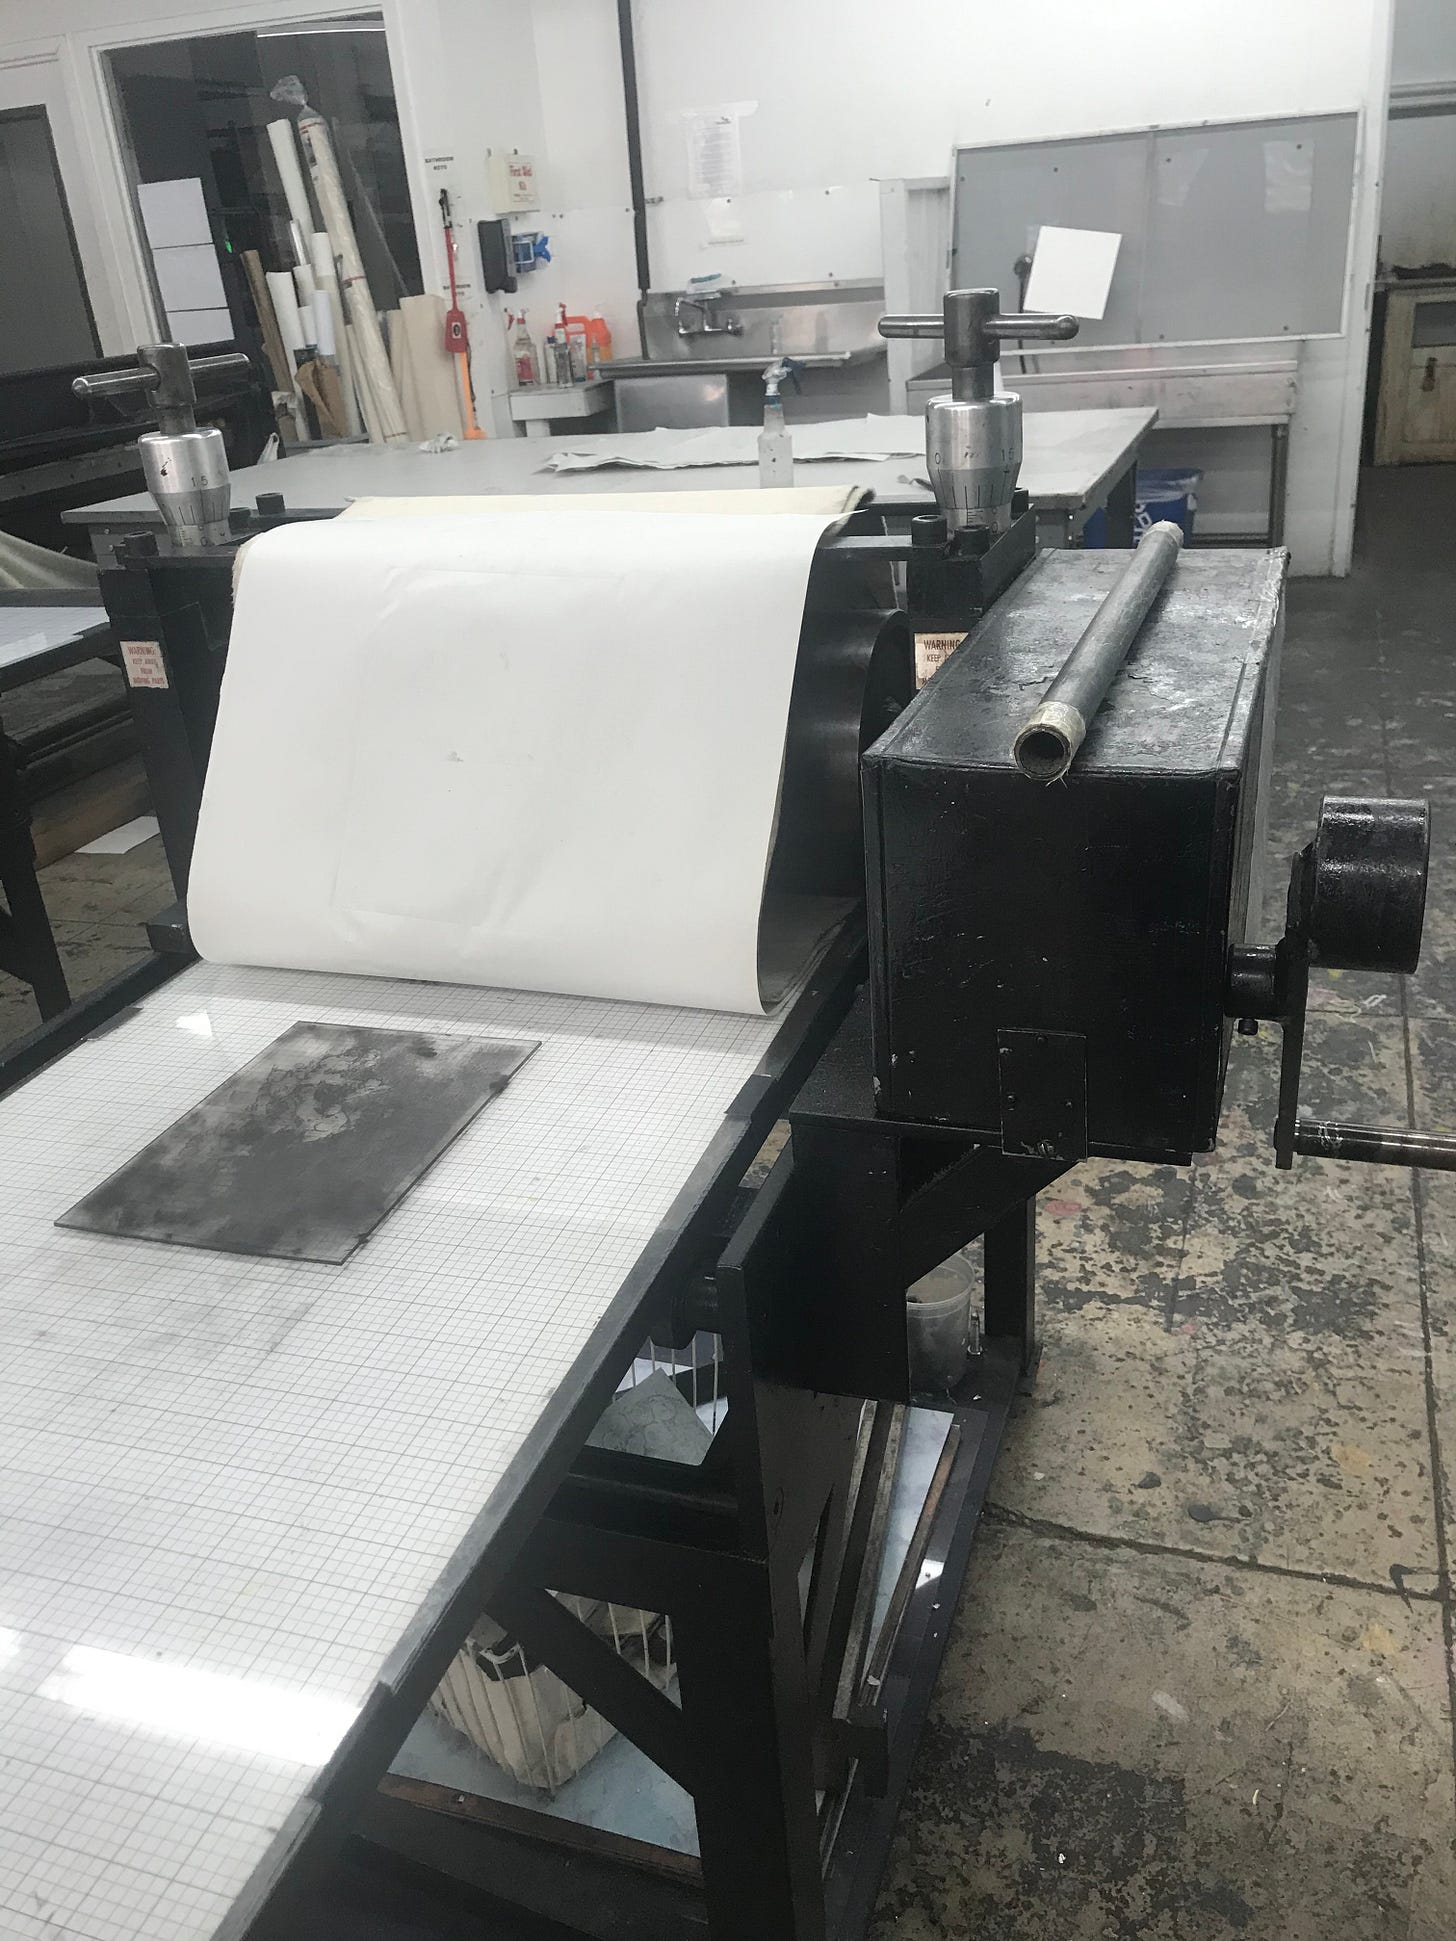 Documentation of intaglio process.  The image shows a large etching prress with an inked plate.